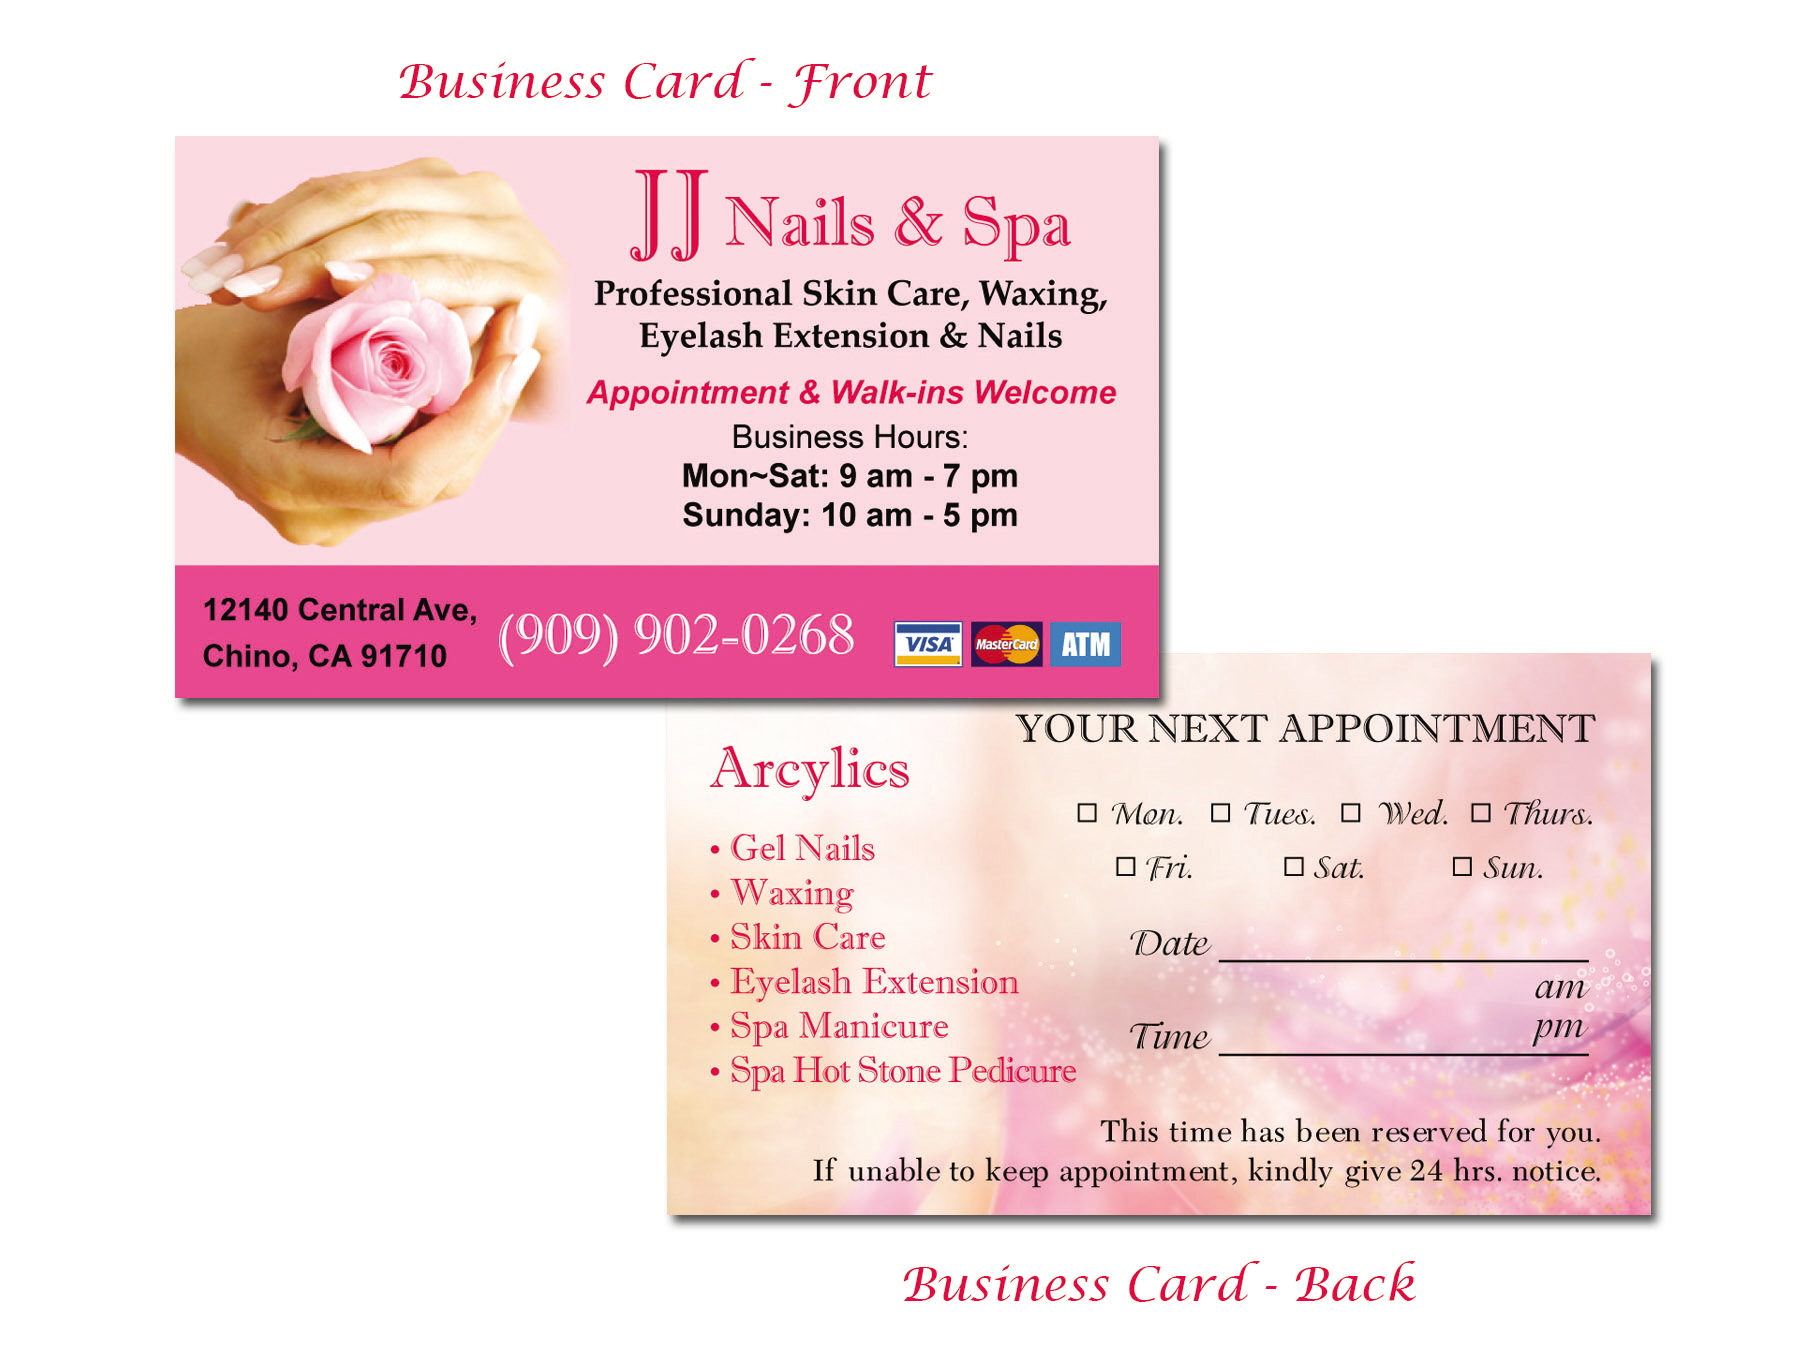 Esthetician business cards templates business card sample nail salon business card friedricerecipe